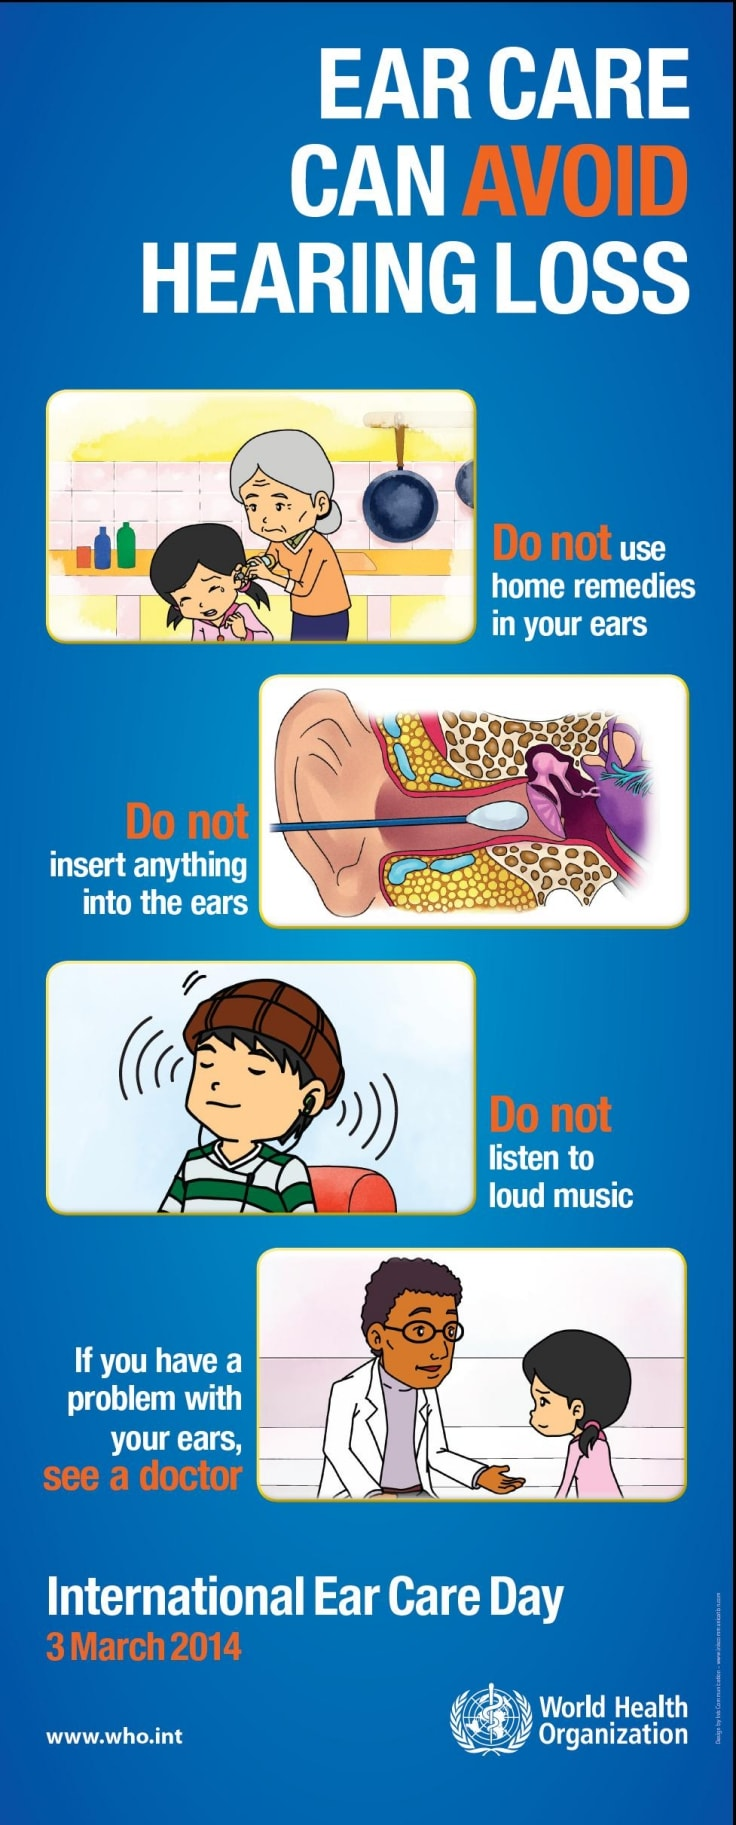 Tips For Healthy Ears To Avoid Hearing Loss